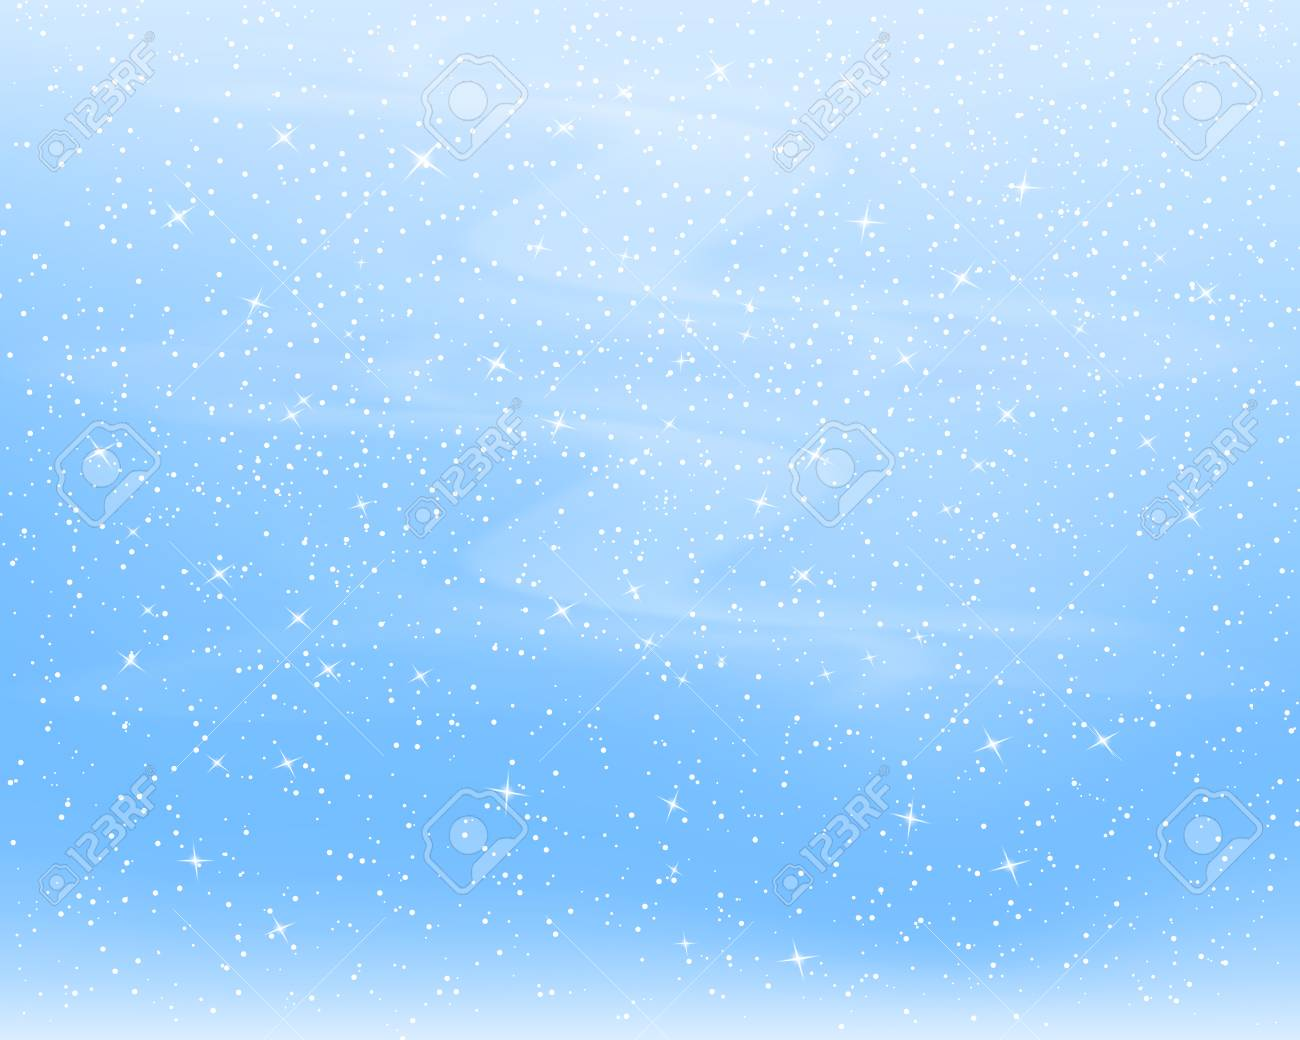 Falling snow background. Vector illustration with snowflakes. Winter snowing sky. Eps 10. - 126582842